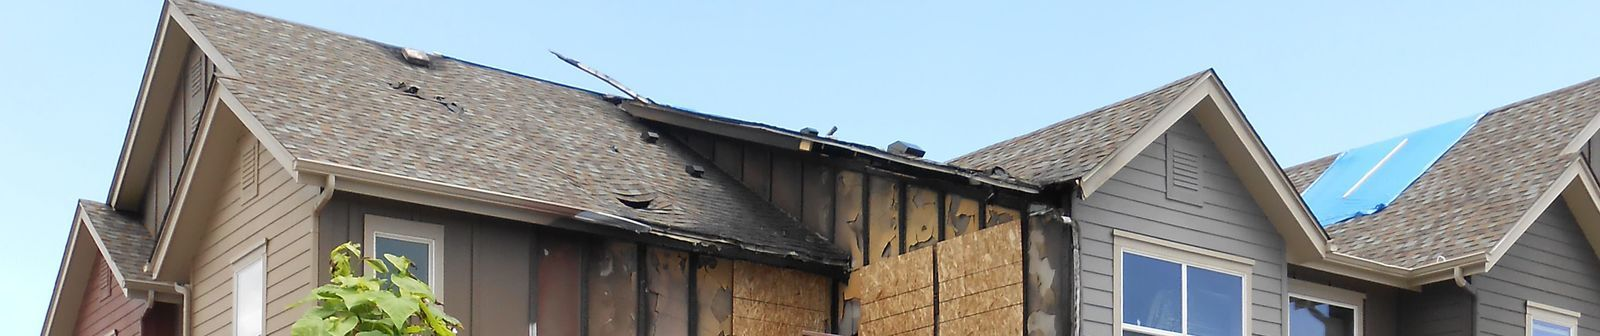 Fire Damage Cleanup in Fort Collins homes and businesses